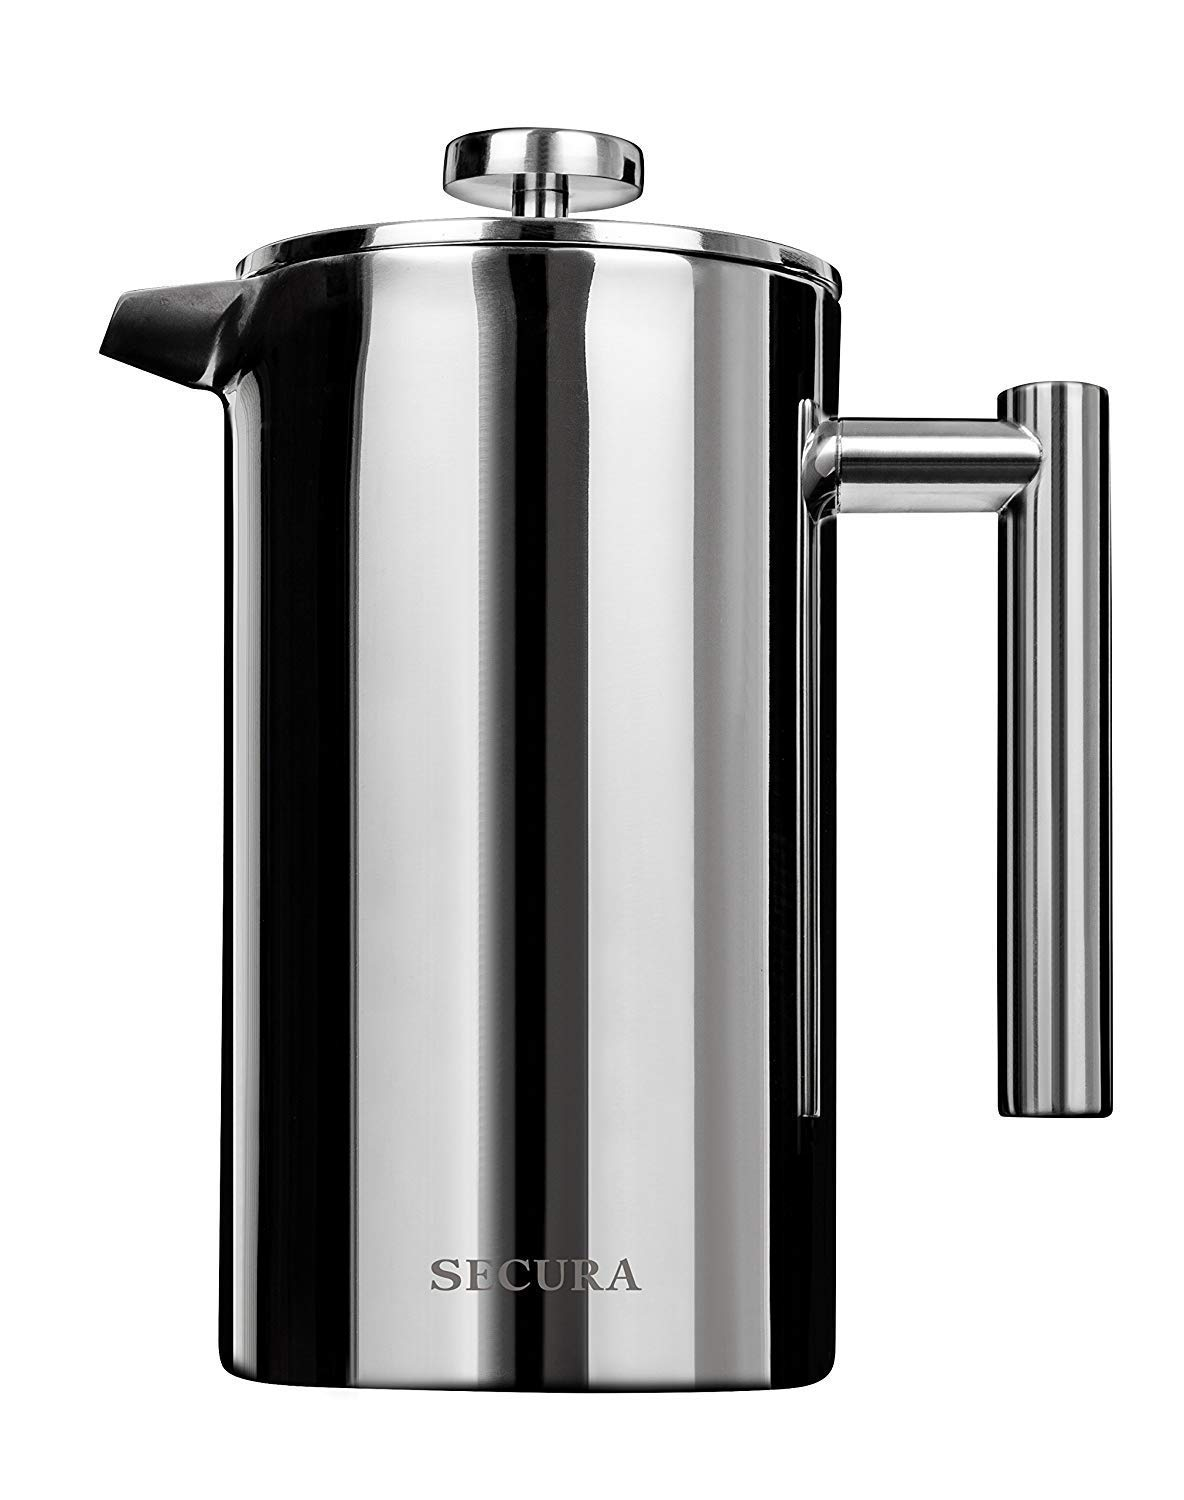 Secura Stainless Steel French Press Coffee Maker (1000ML)